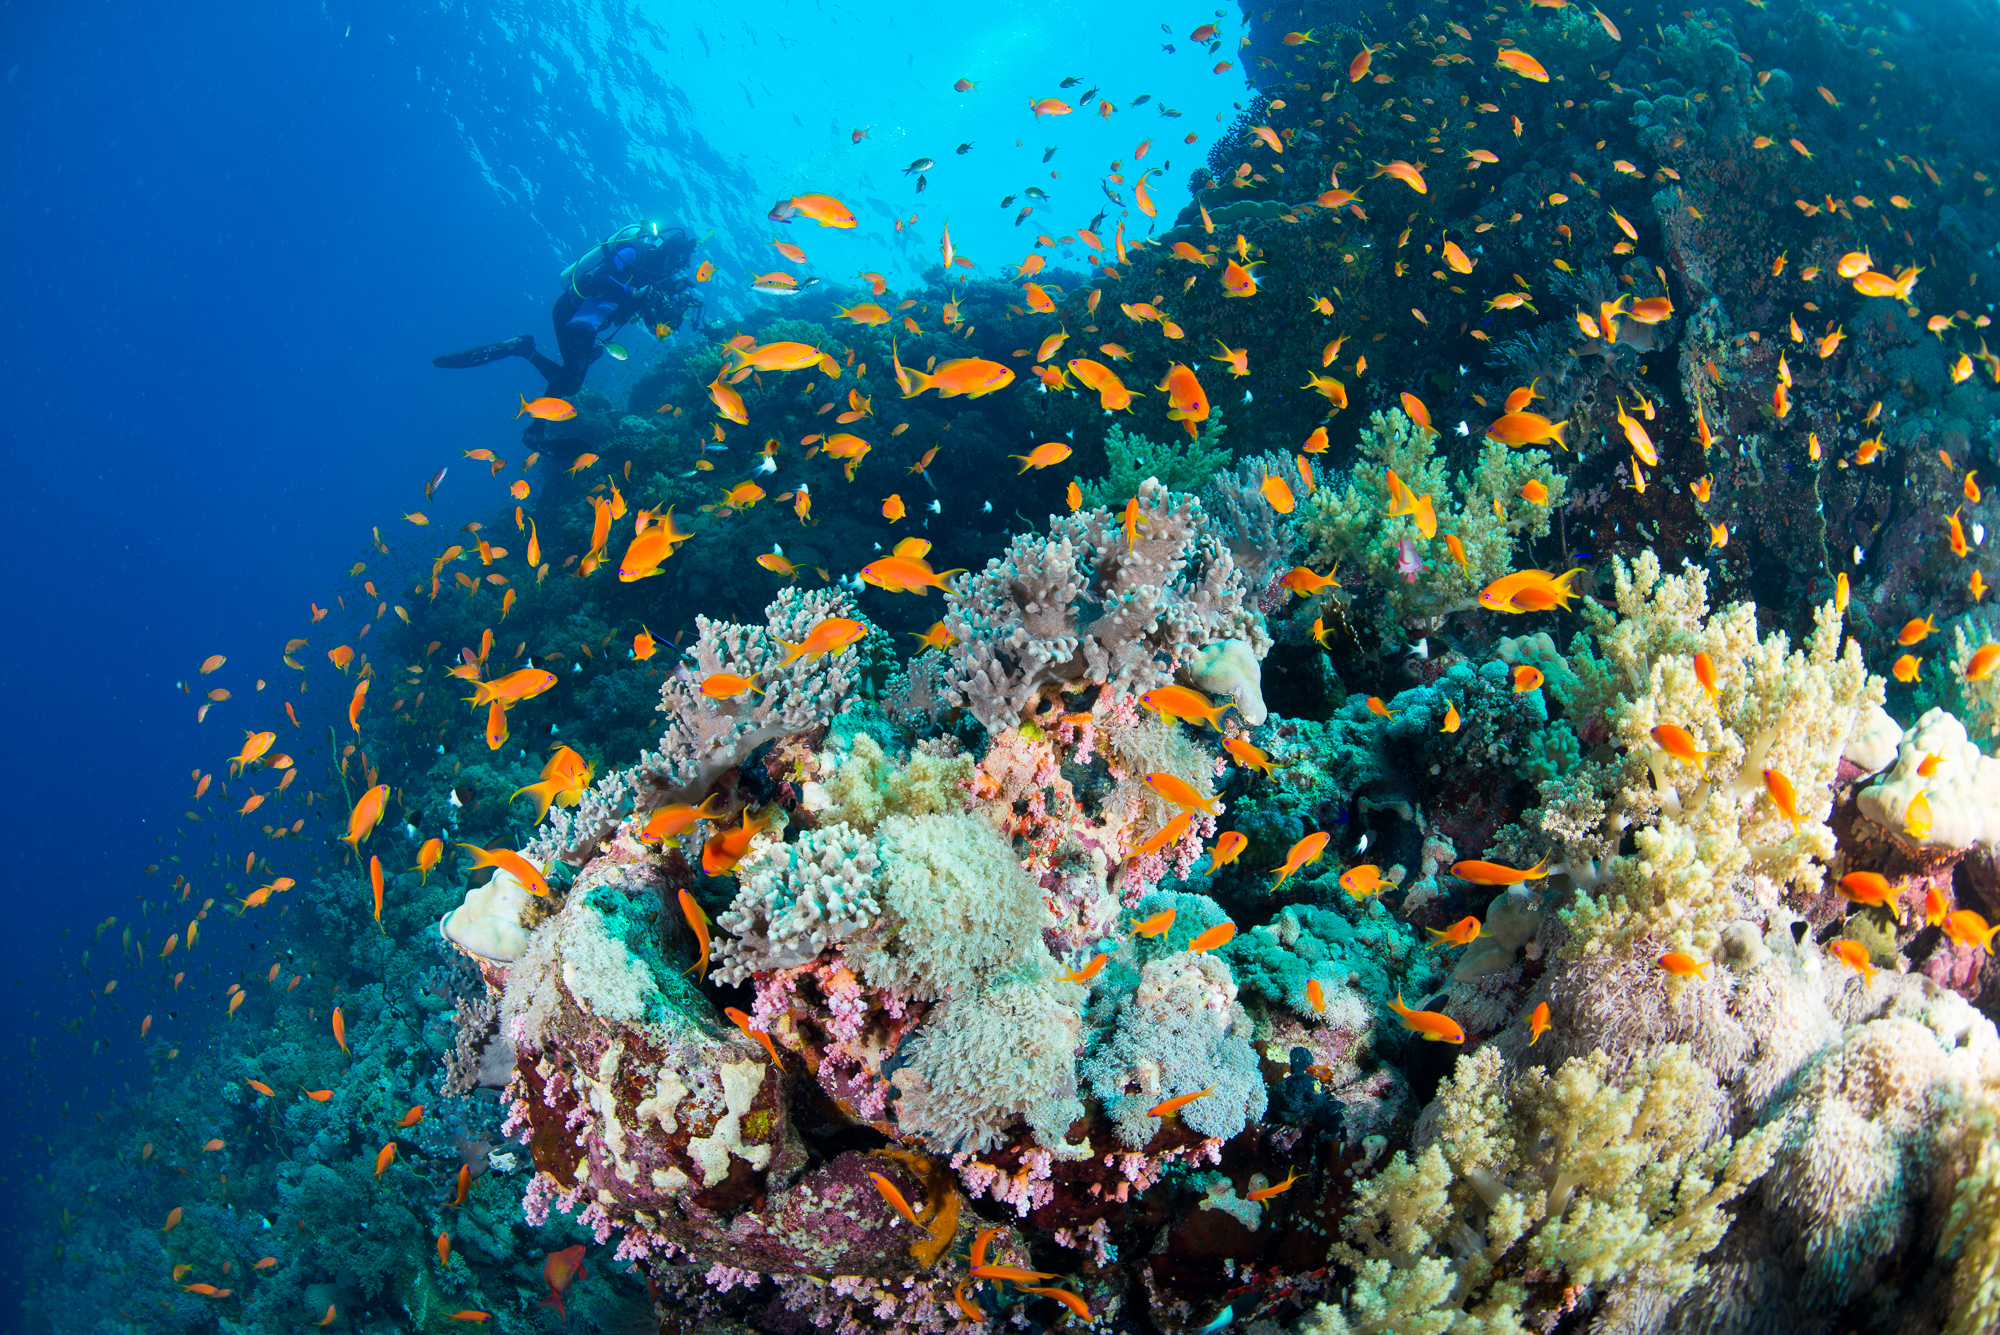 Red Sea Biodiversity Survey, Research from the Academy